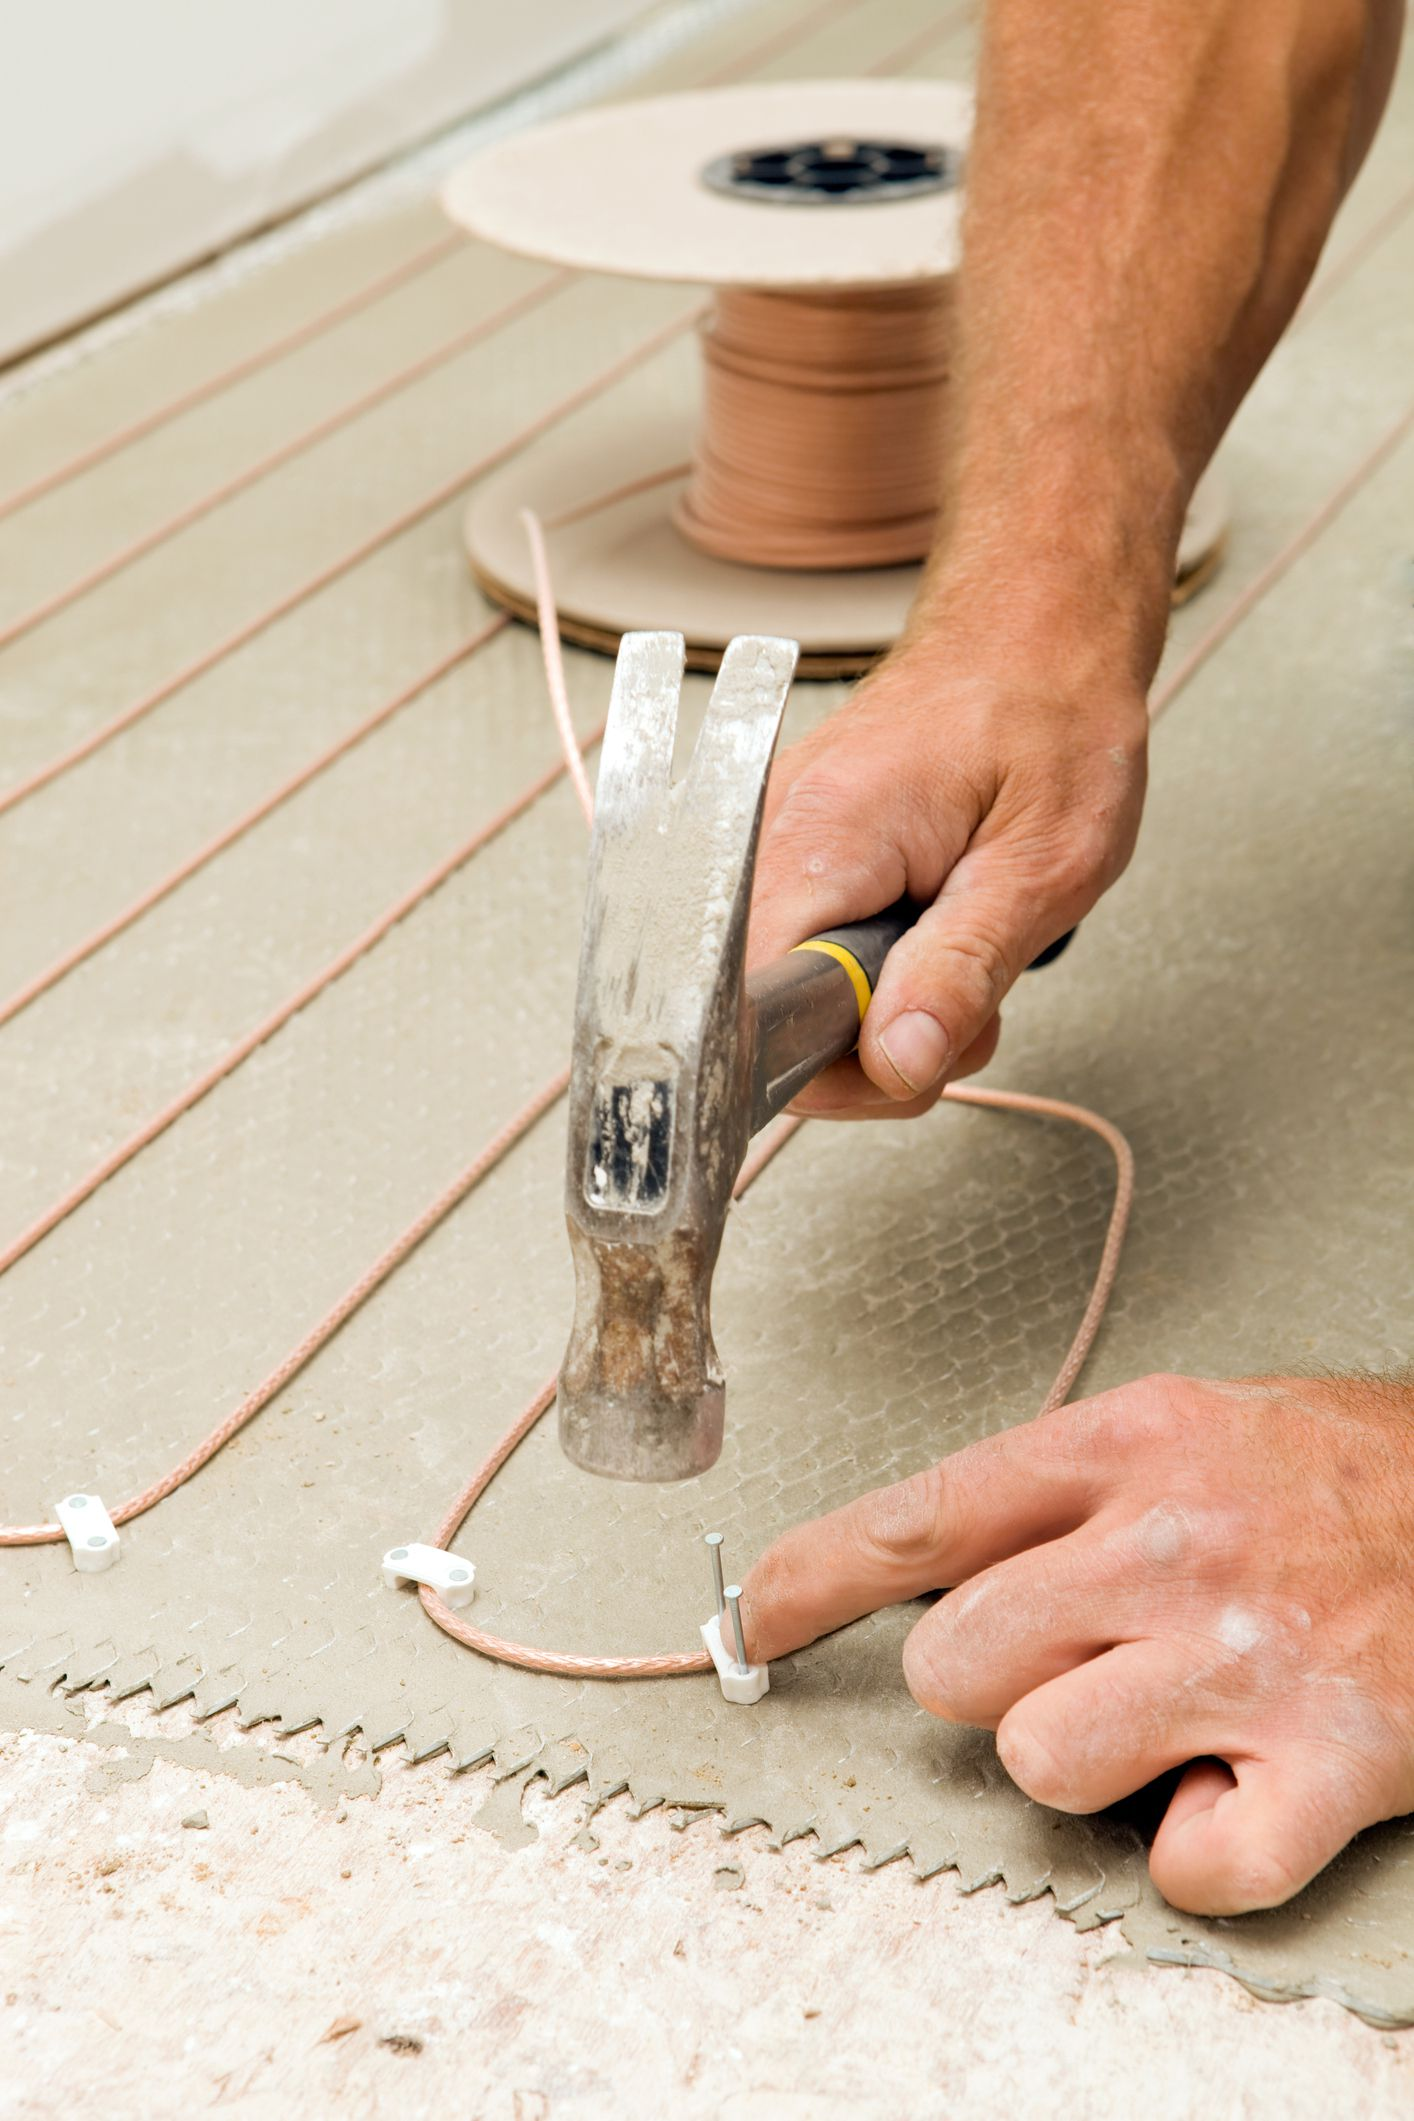 Electric radiant floor heating basics cost pros cons heated subfloor basics what you should know dailygadgetfo Image collections